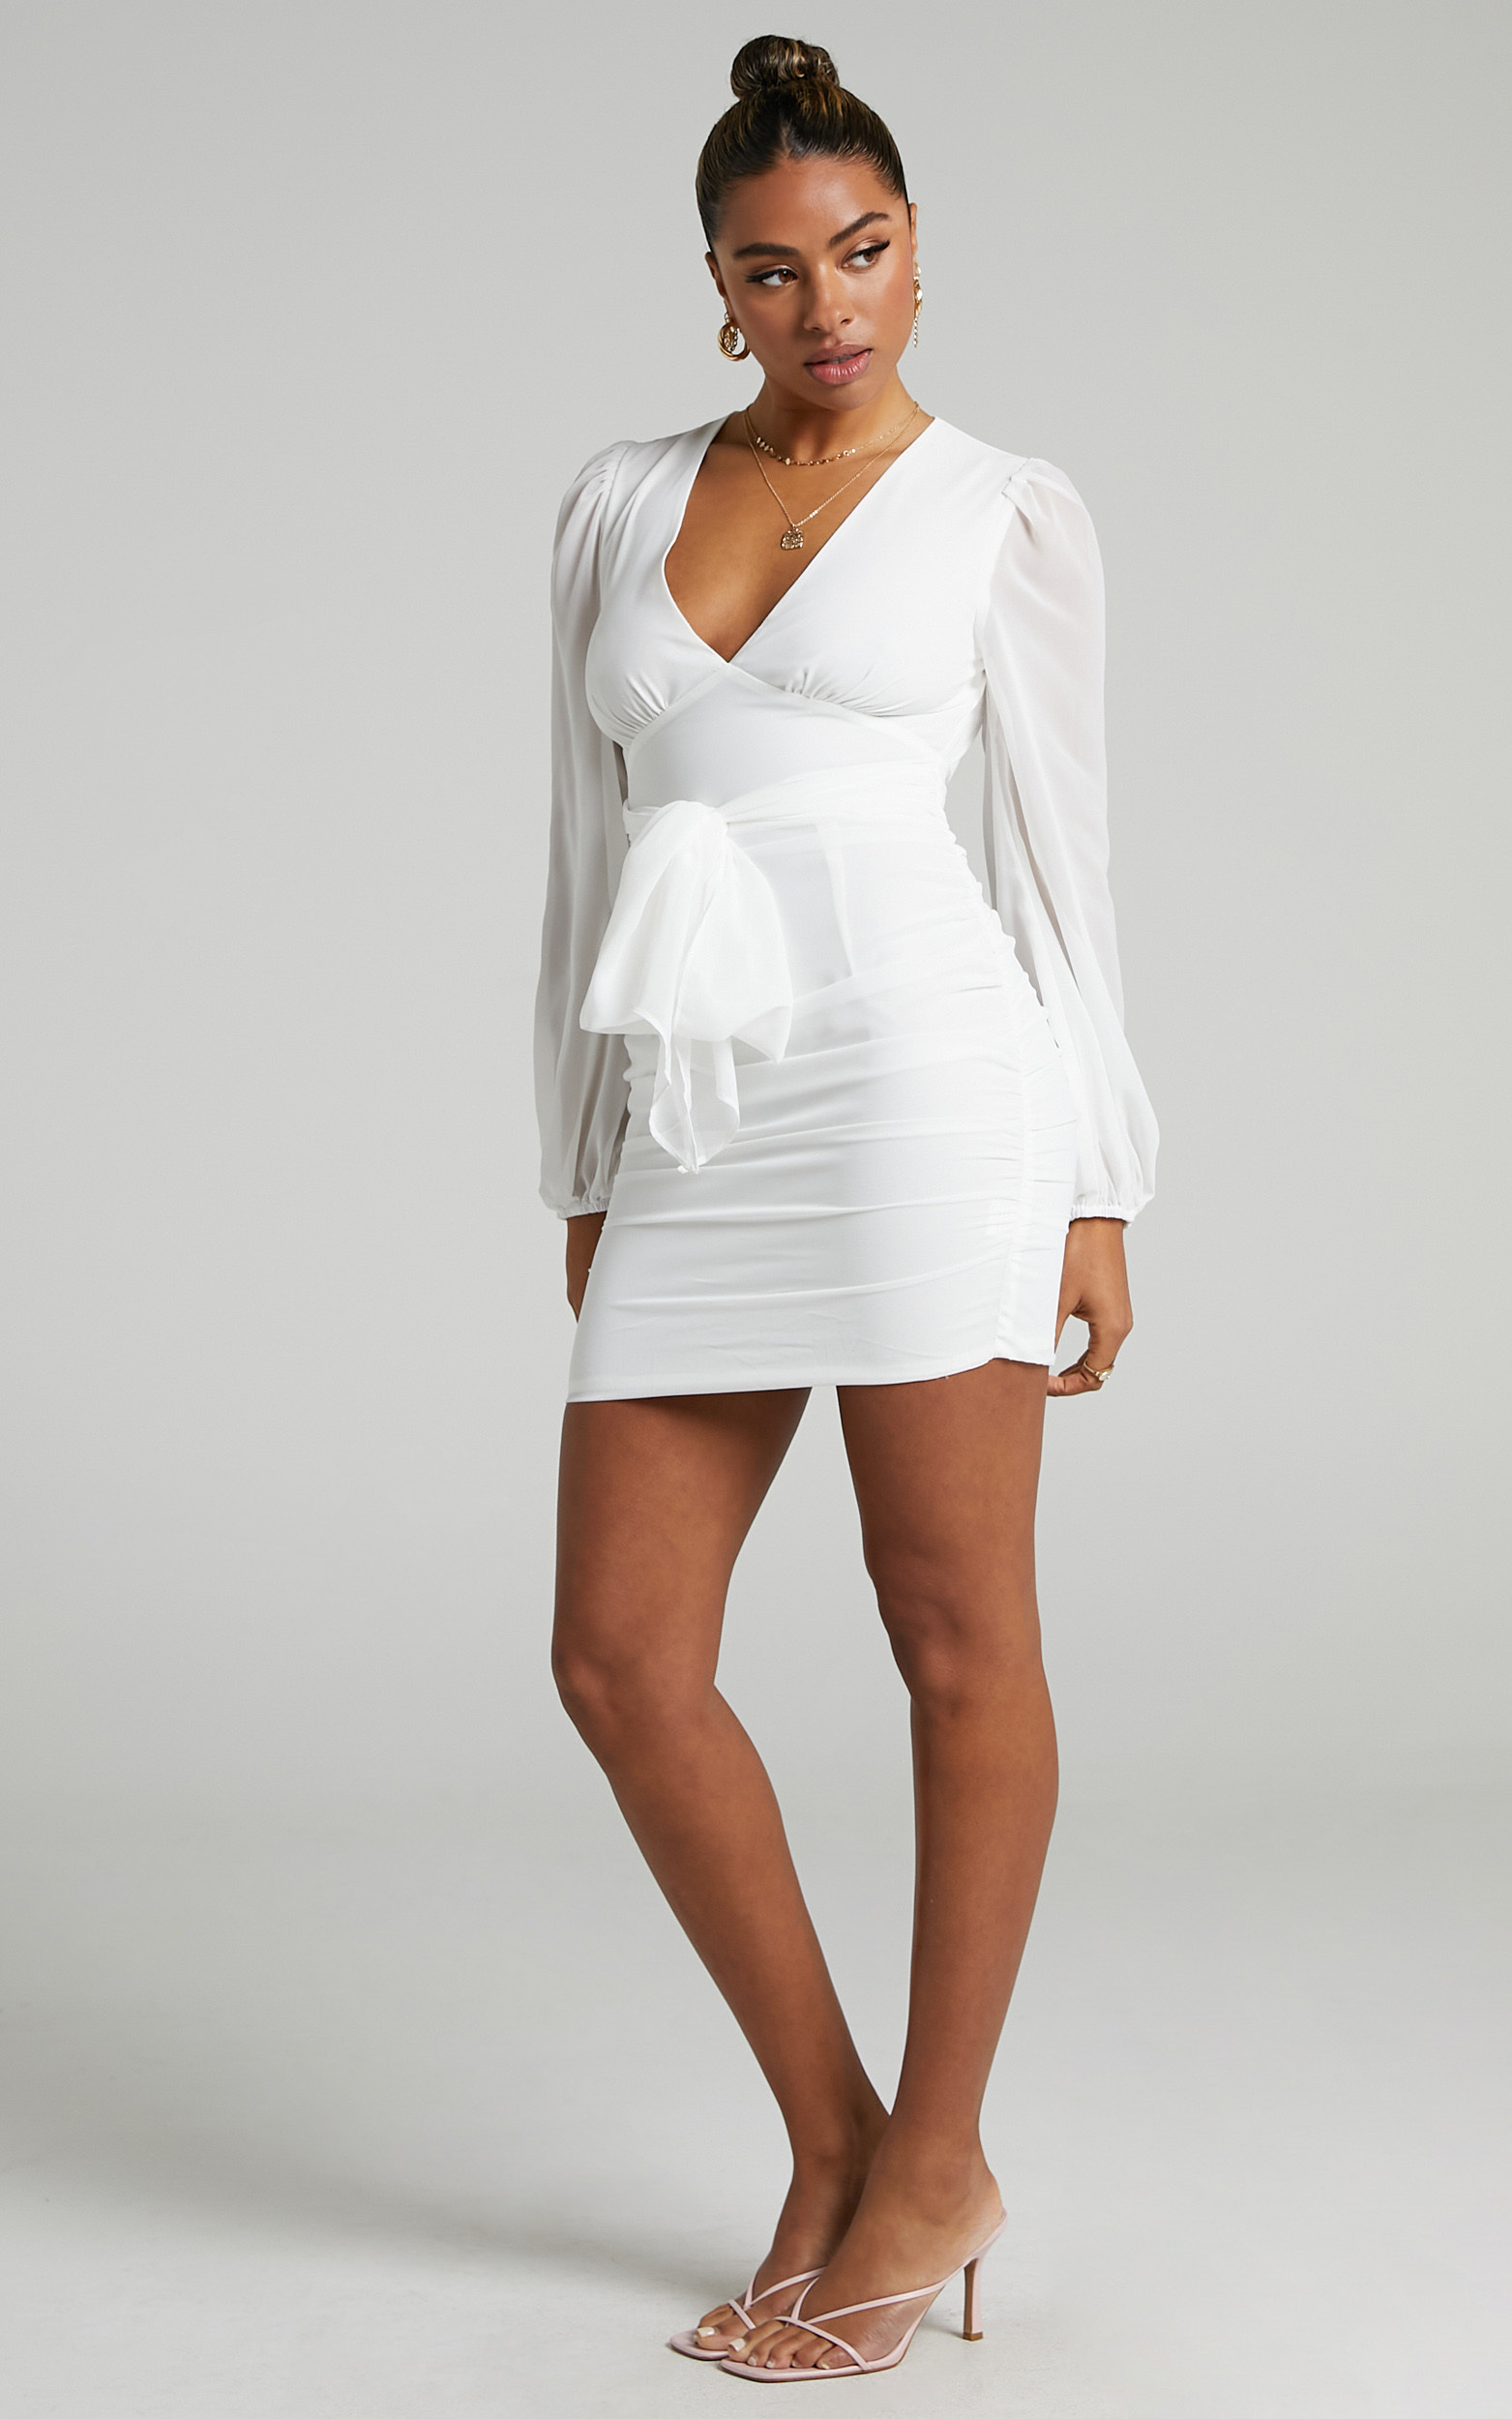 Party Just For Fun Dress in White - 06, WHT3, hi-res image number null